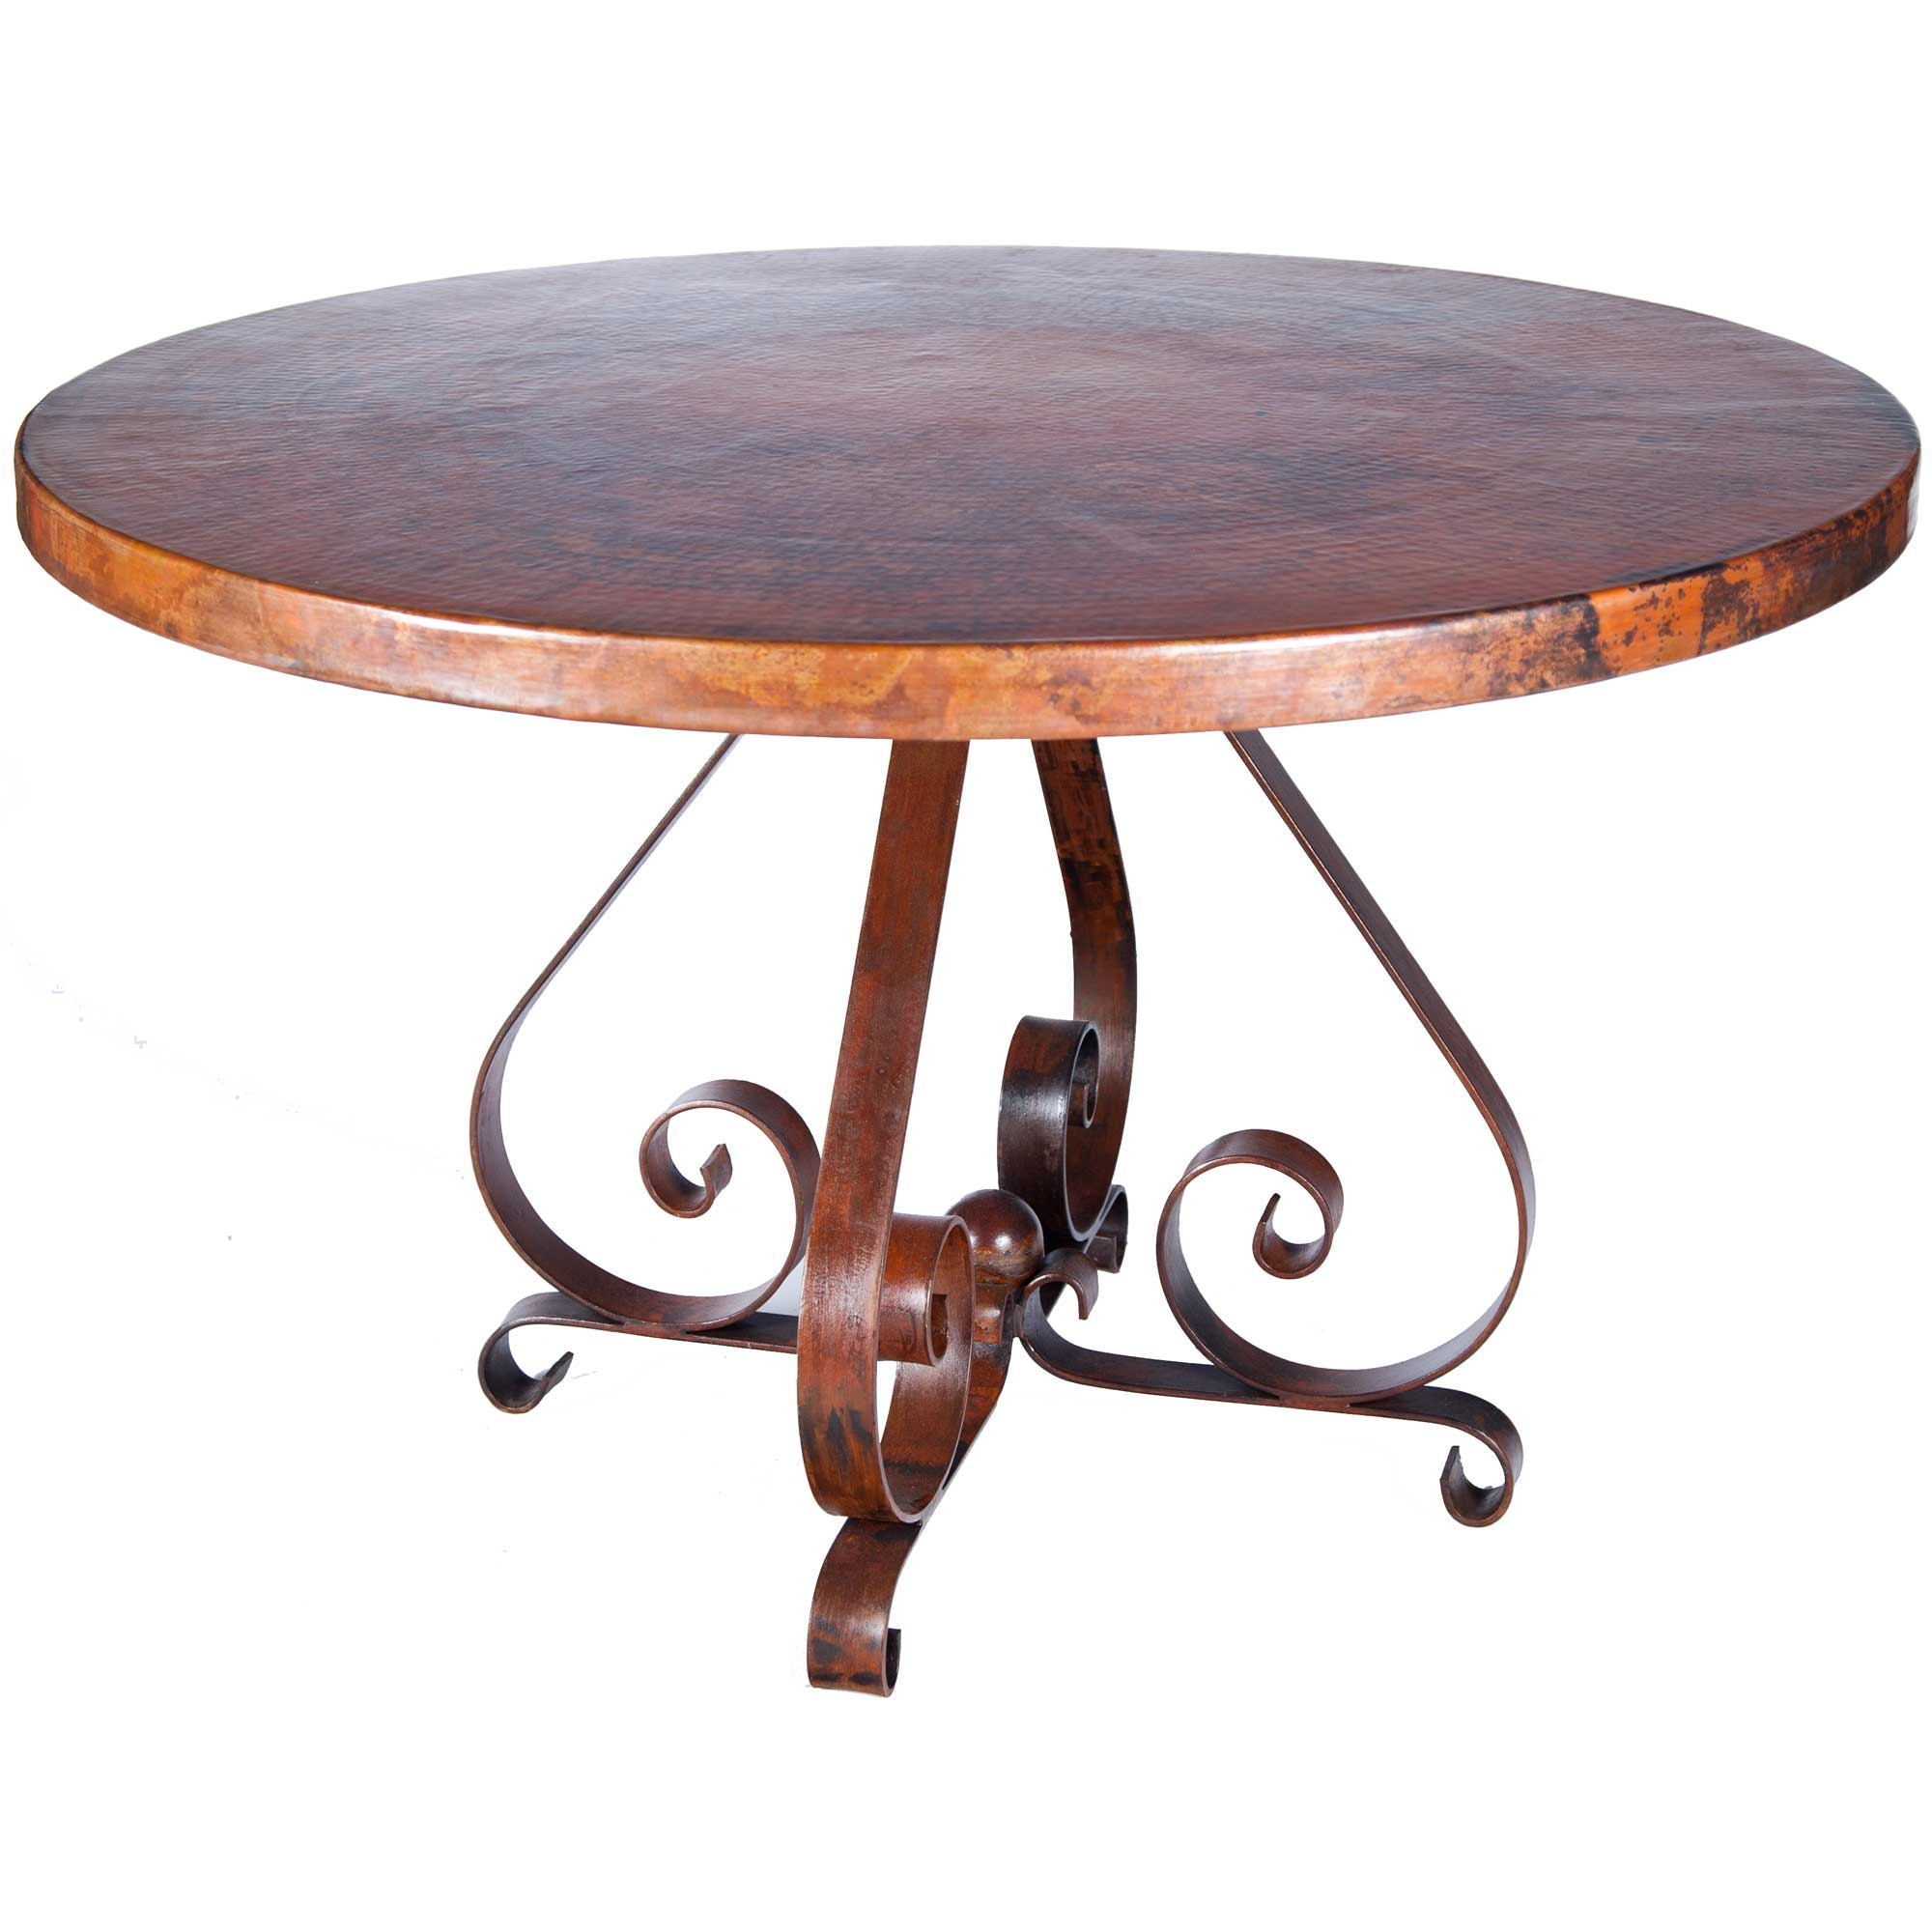 Pierre Iron Dining Table With 48 In Round Copper Top